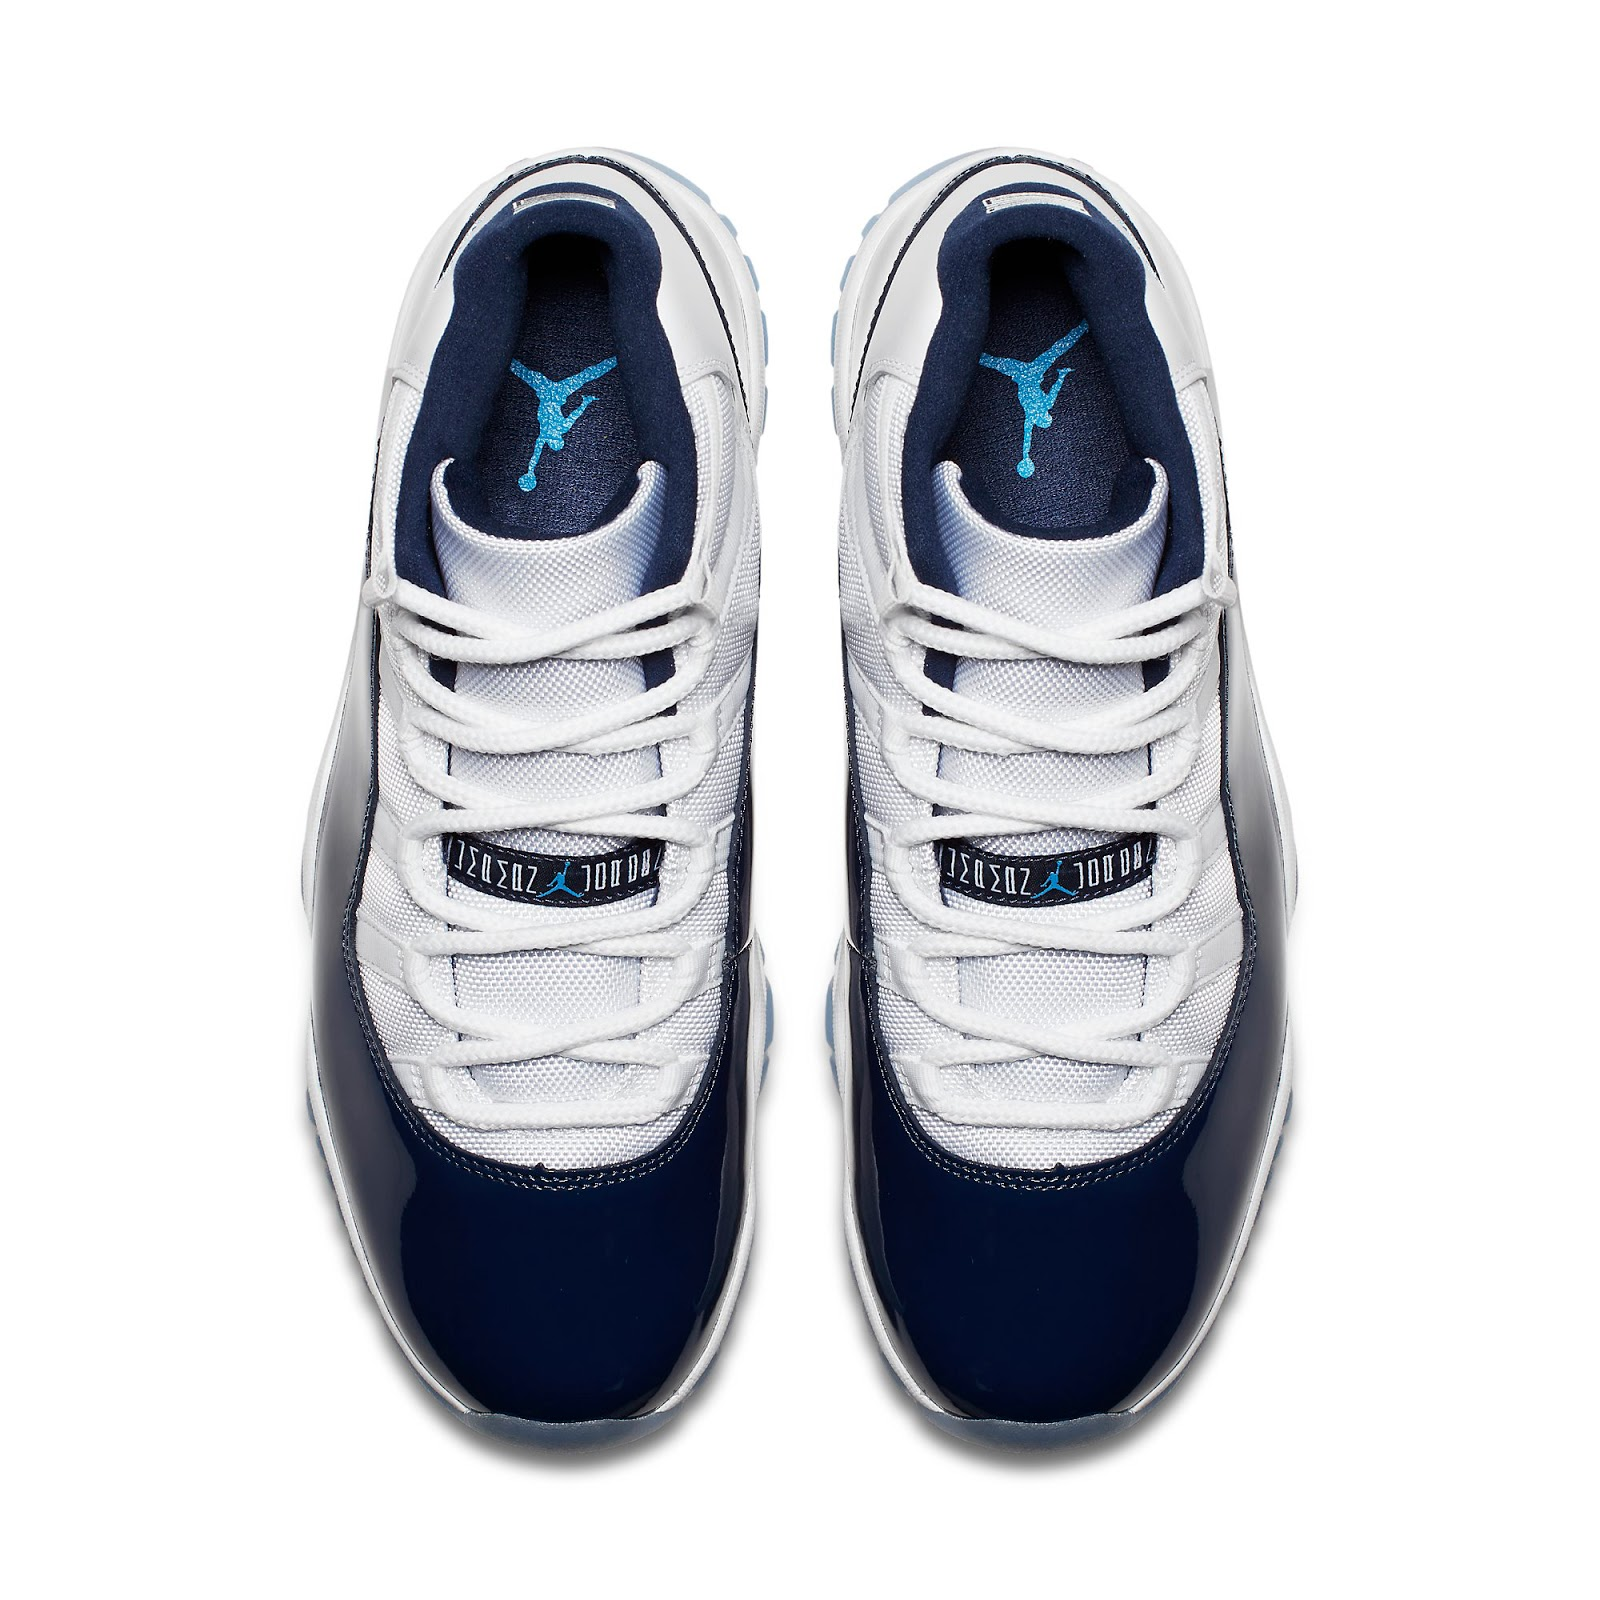 8c53ce6e3caba8 ajordanxi Your  1 Source For Sneaker Release Dates  Air Jordan 11 ...